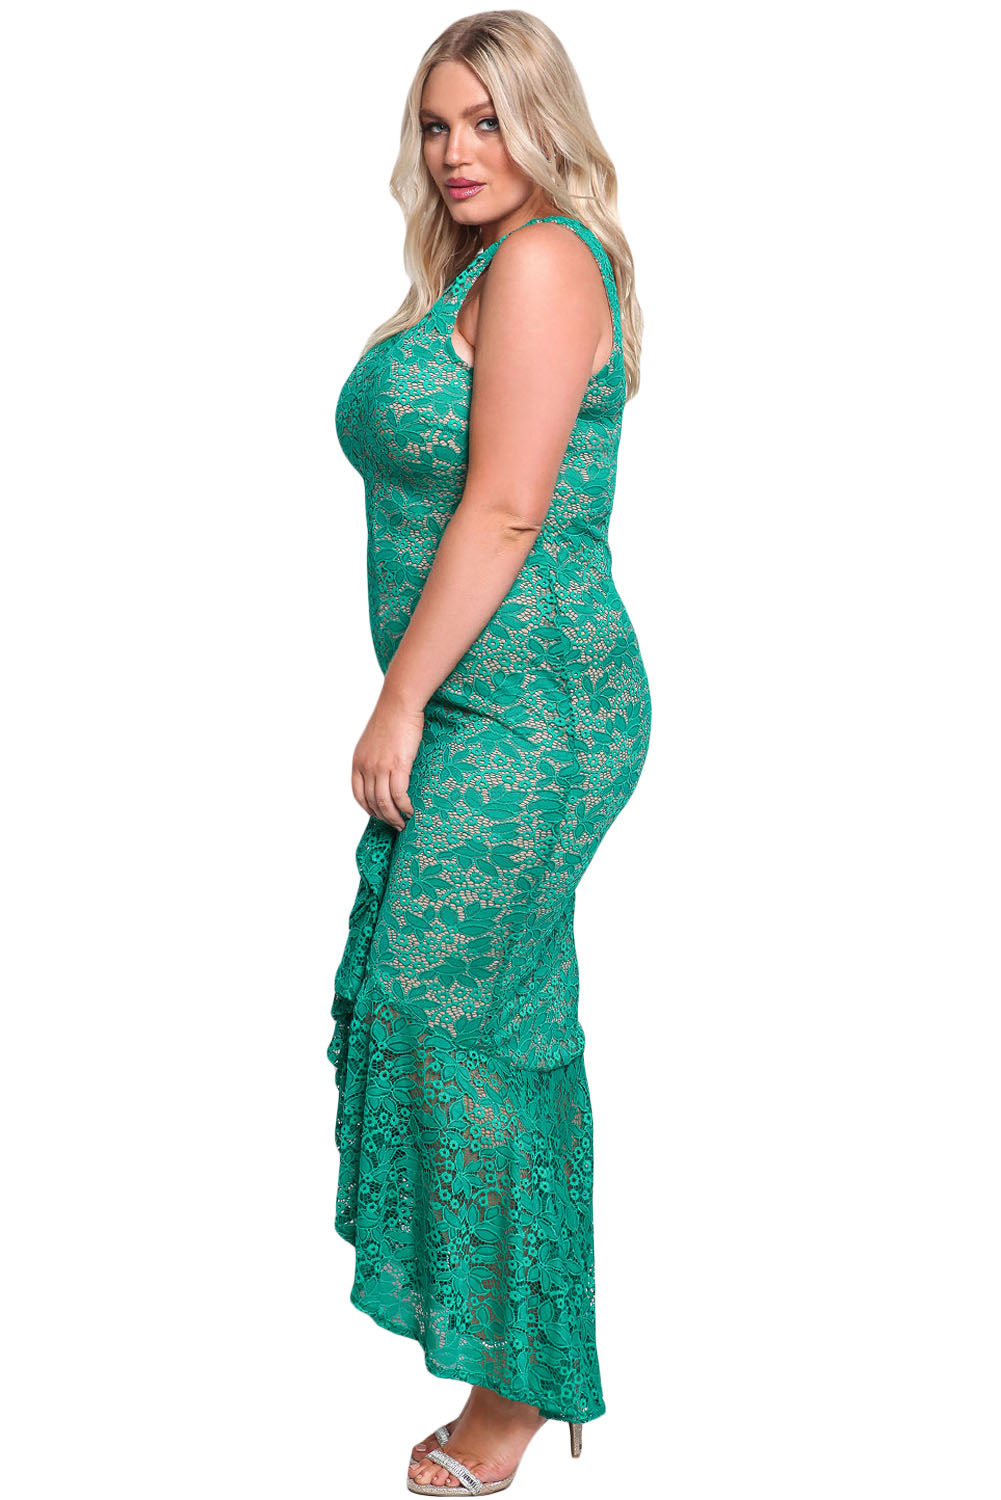 cadc9d8bc42eb Sexy Emerald Plus Size Floral Lace Ruffle Mermaid Maxi Gown – SEXY ...